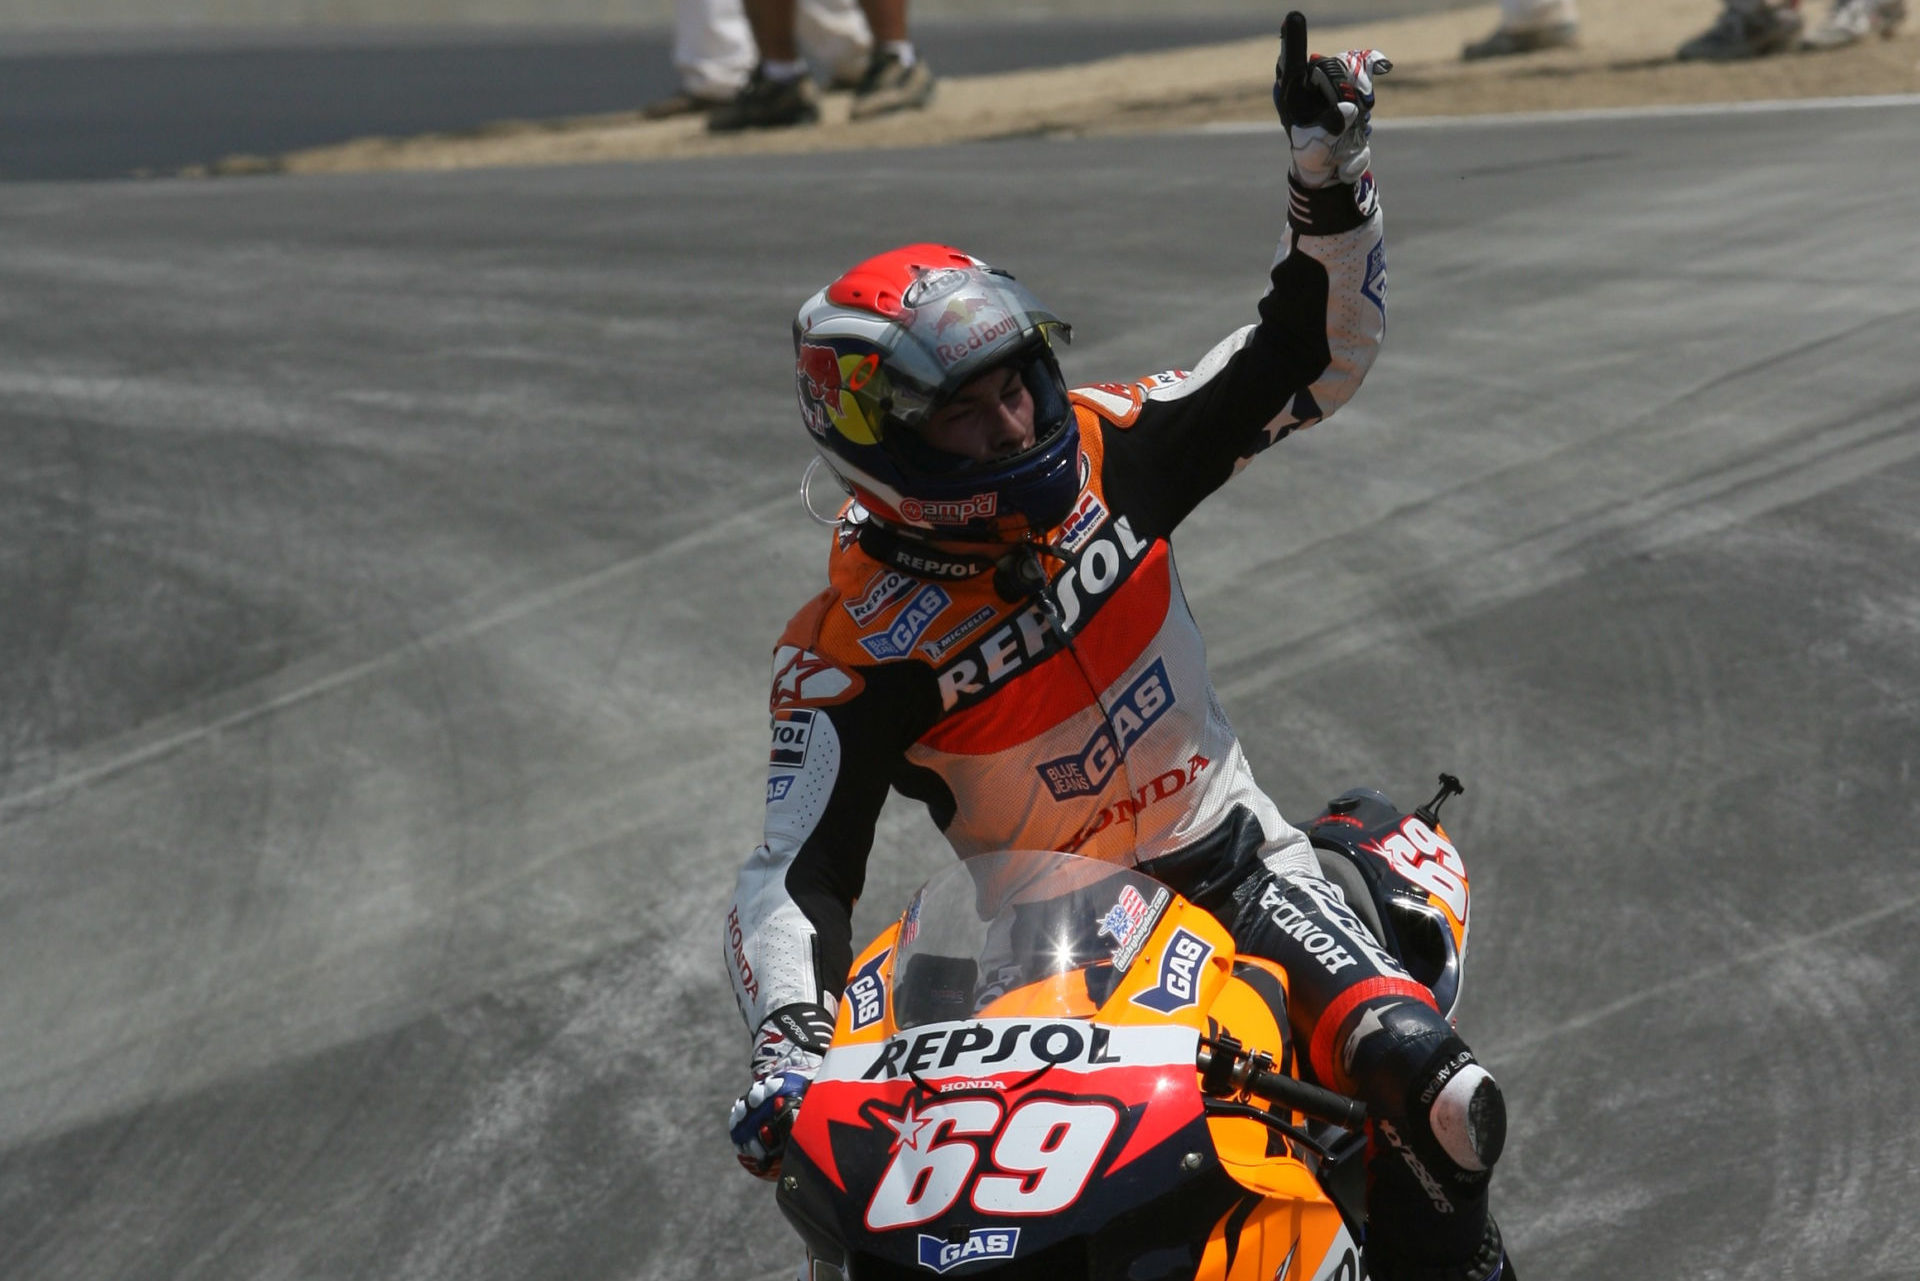 The late Nicky Hayden at the U.S. Grand Prix at Laguna Seca in 2005. Photo by Brian J. Nelson.